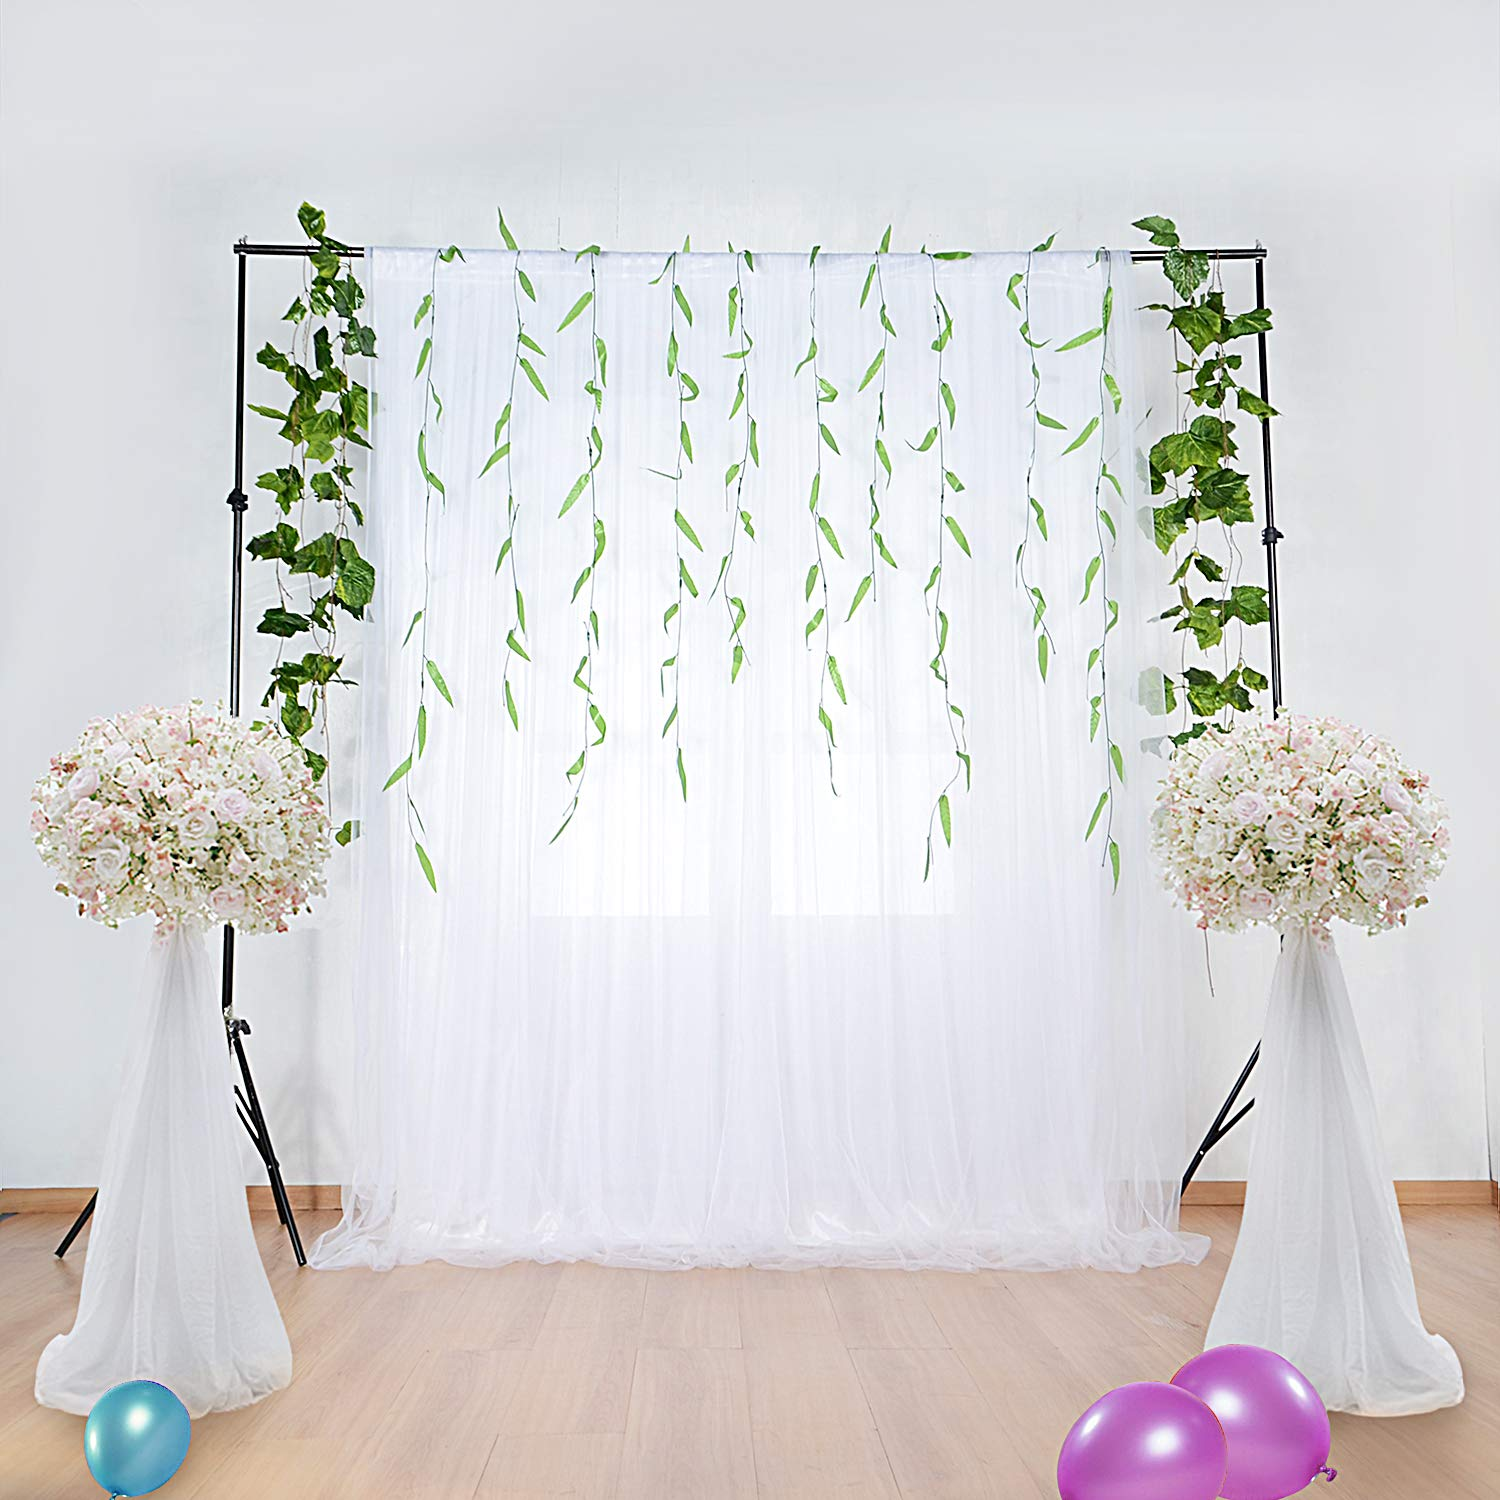 White Tulle Backdrop Curtains for Baby Shower Party Wedding Photo Drape Backdrop for Engagement Bridal Shower Photography Props 5 ft X 7 ft by leegleri